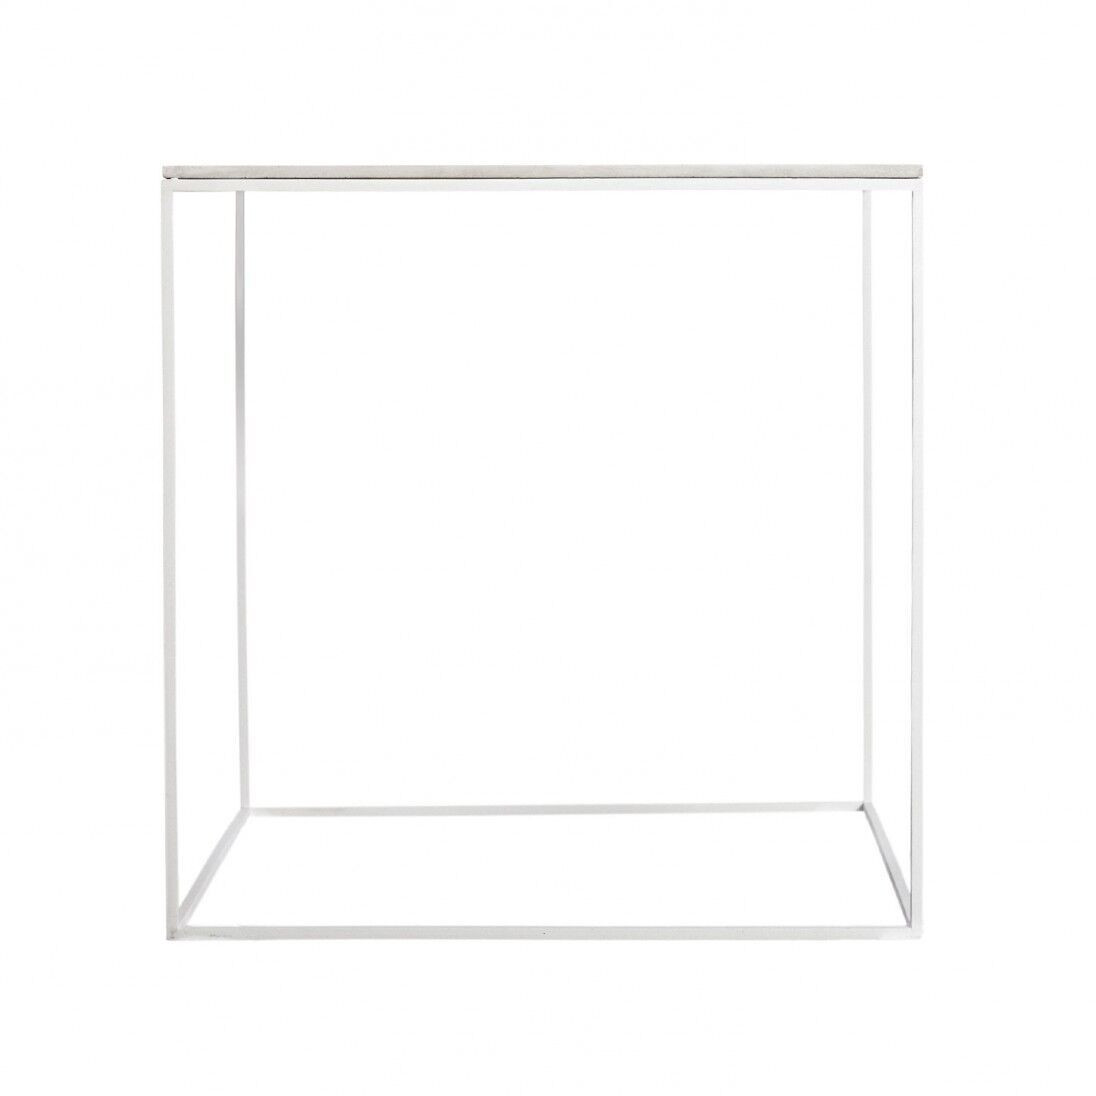 MoonSquare Side Table | White Steel Frame / White Table Top